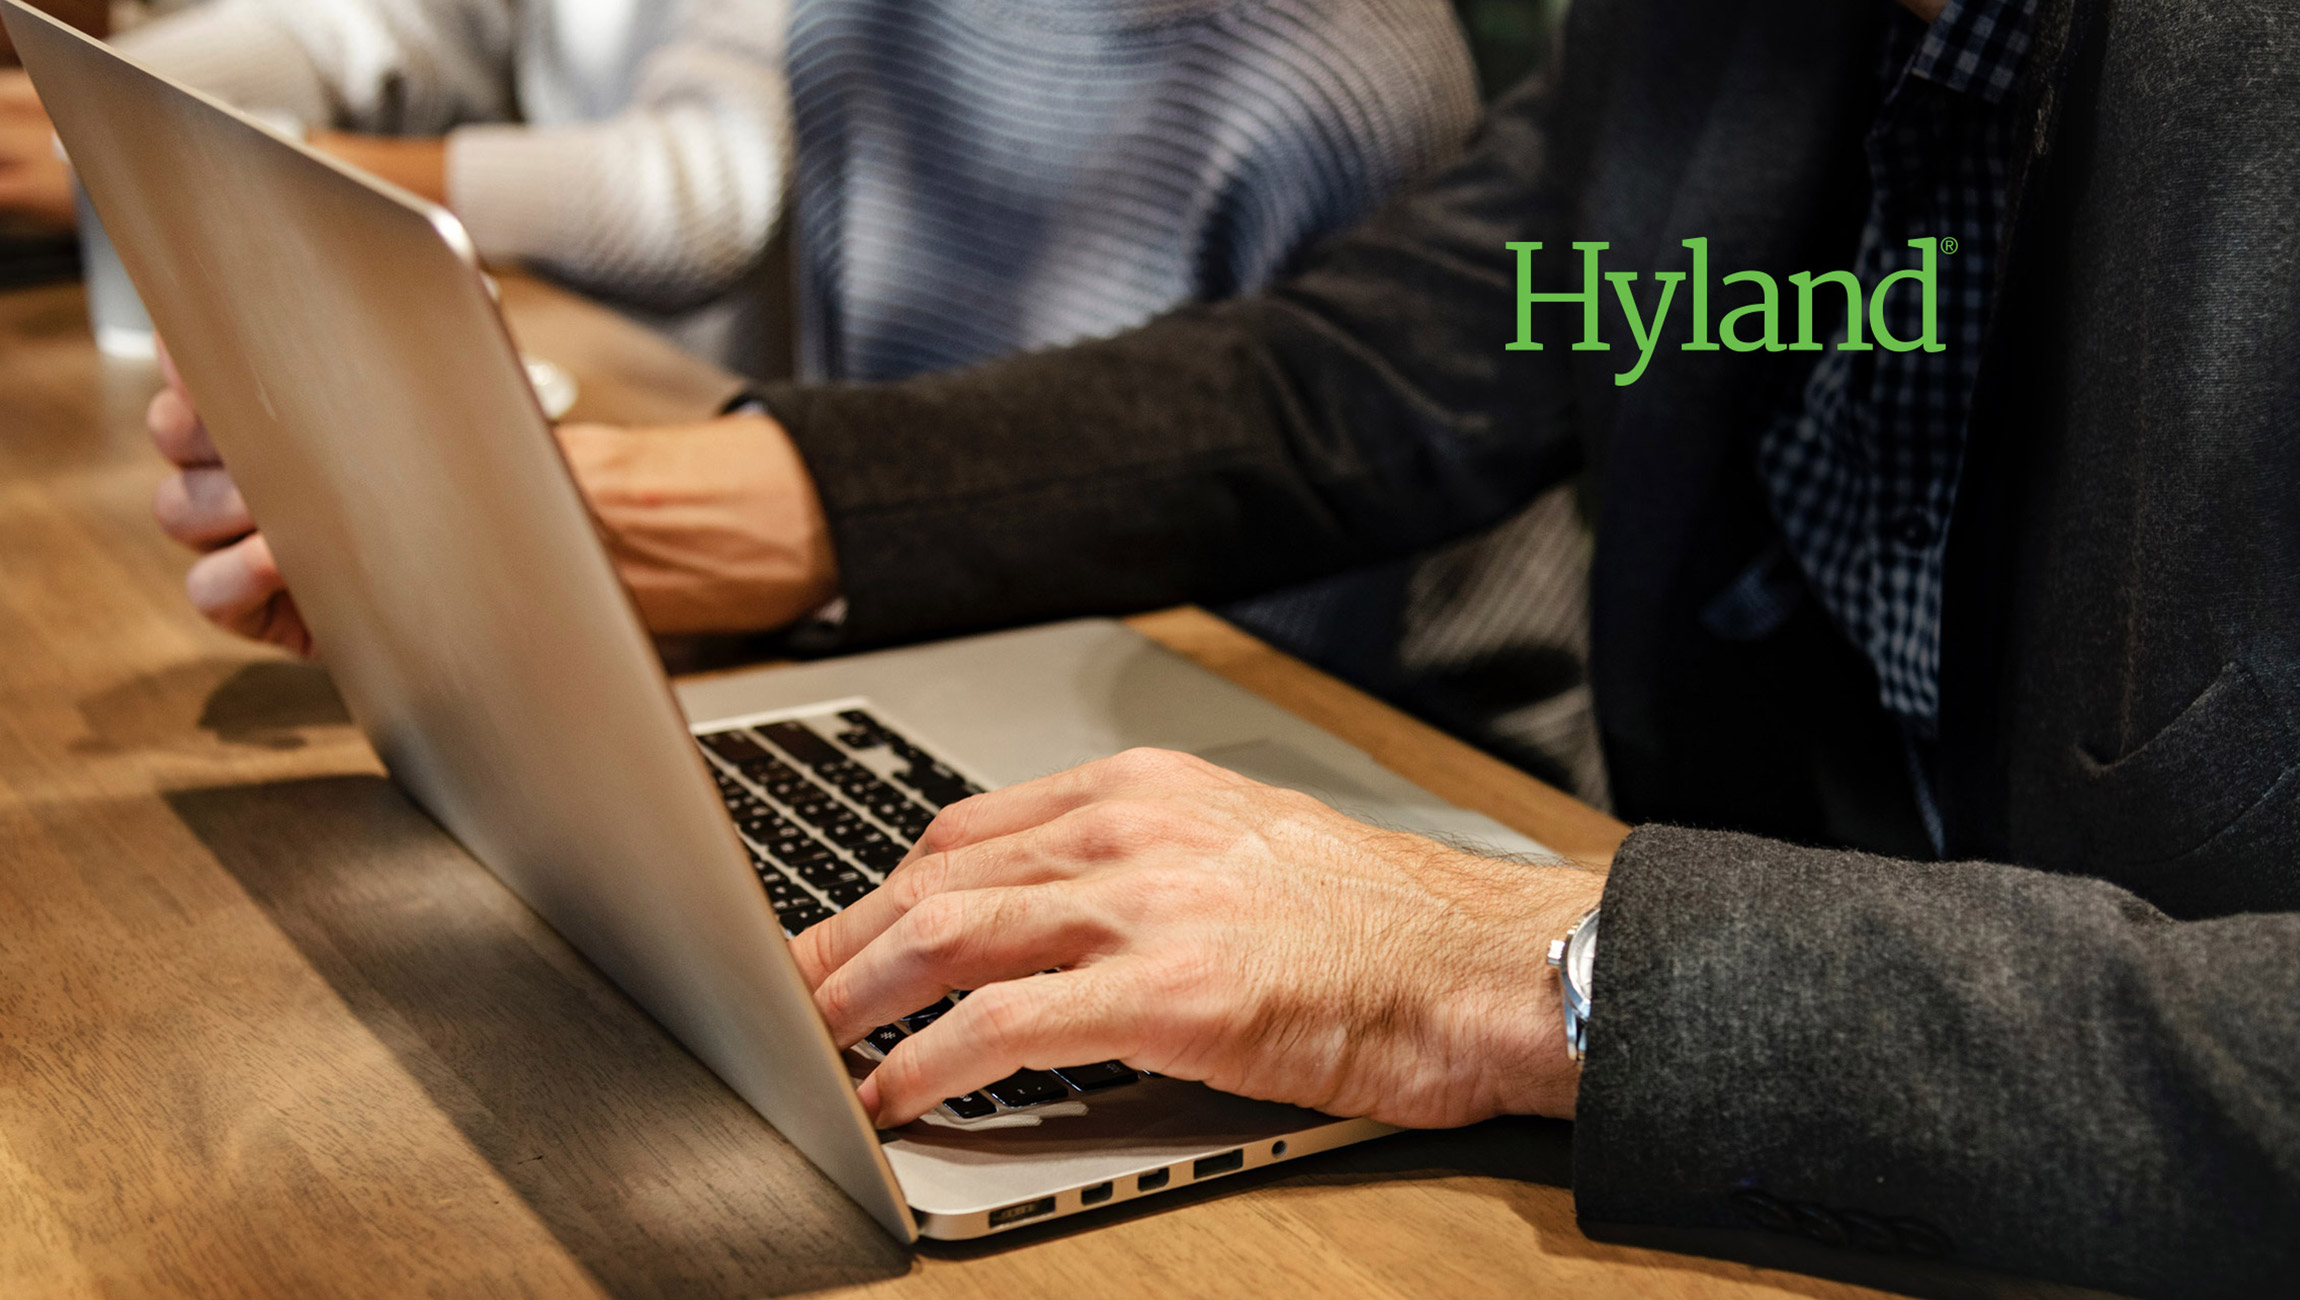 Hyland Named a Leader in ECM Content Platforms Evaluation